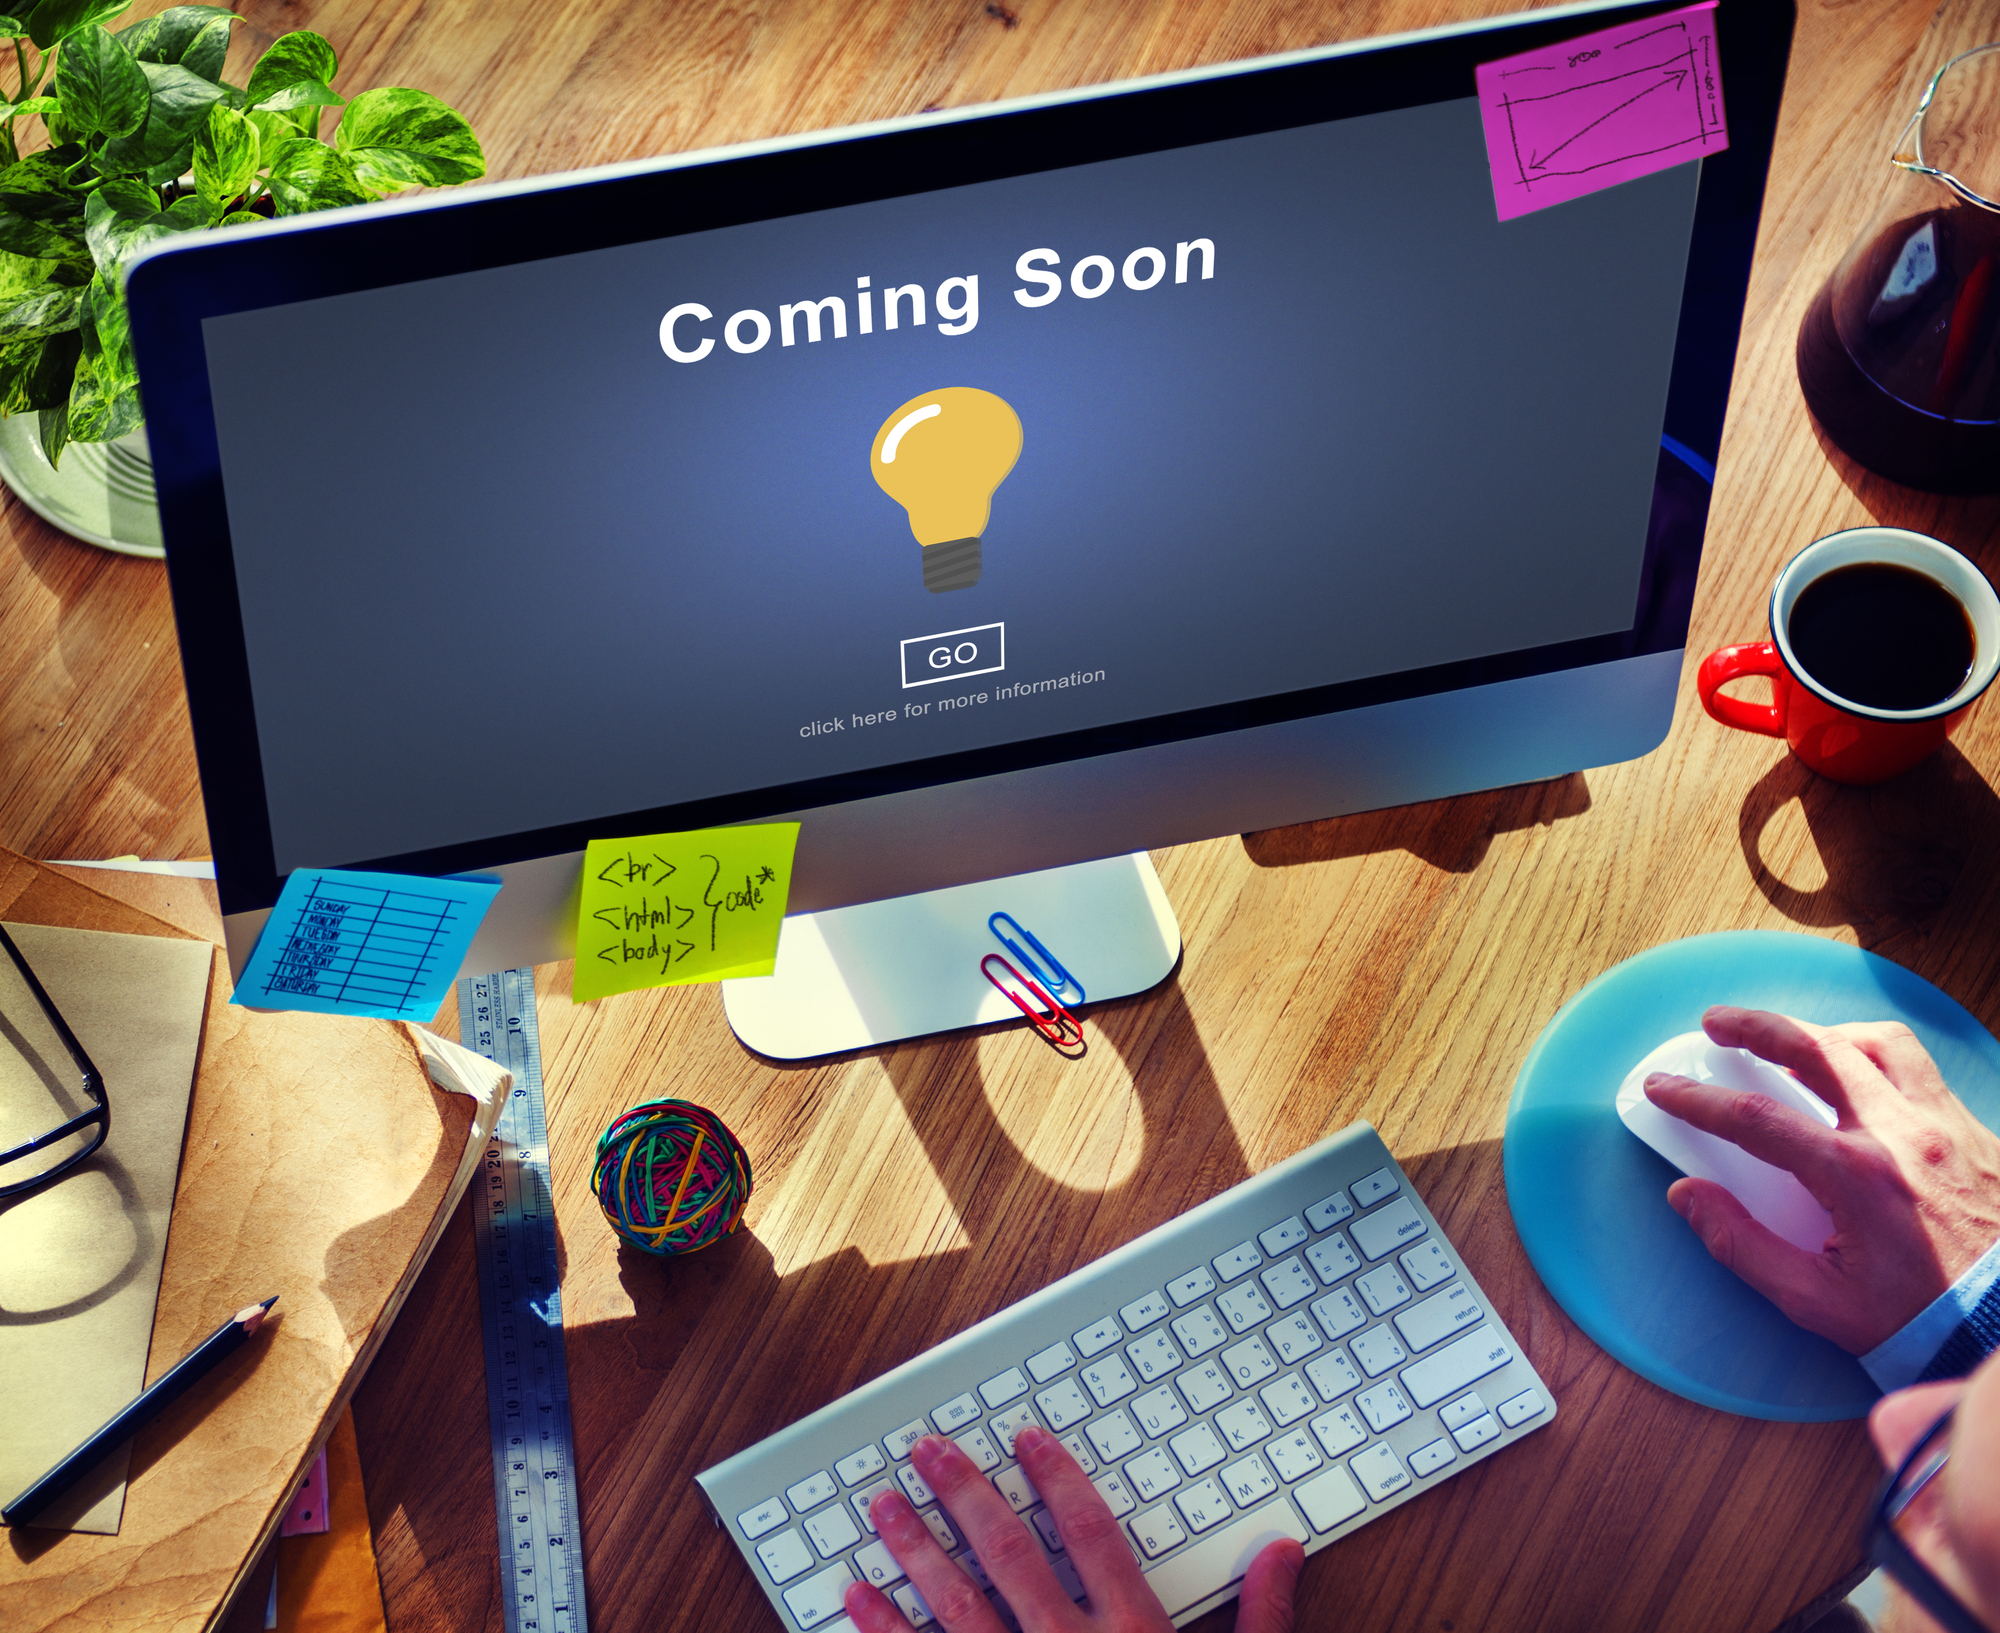 Coming Soon Opening Promotion Announcement No Business Website MHC Websites